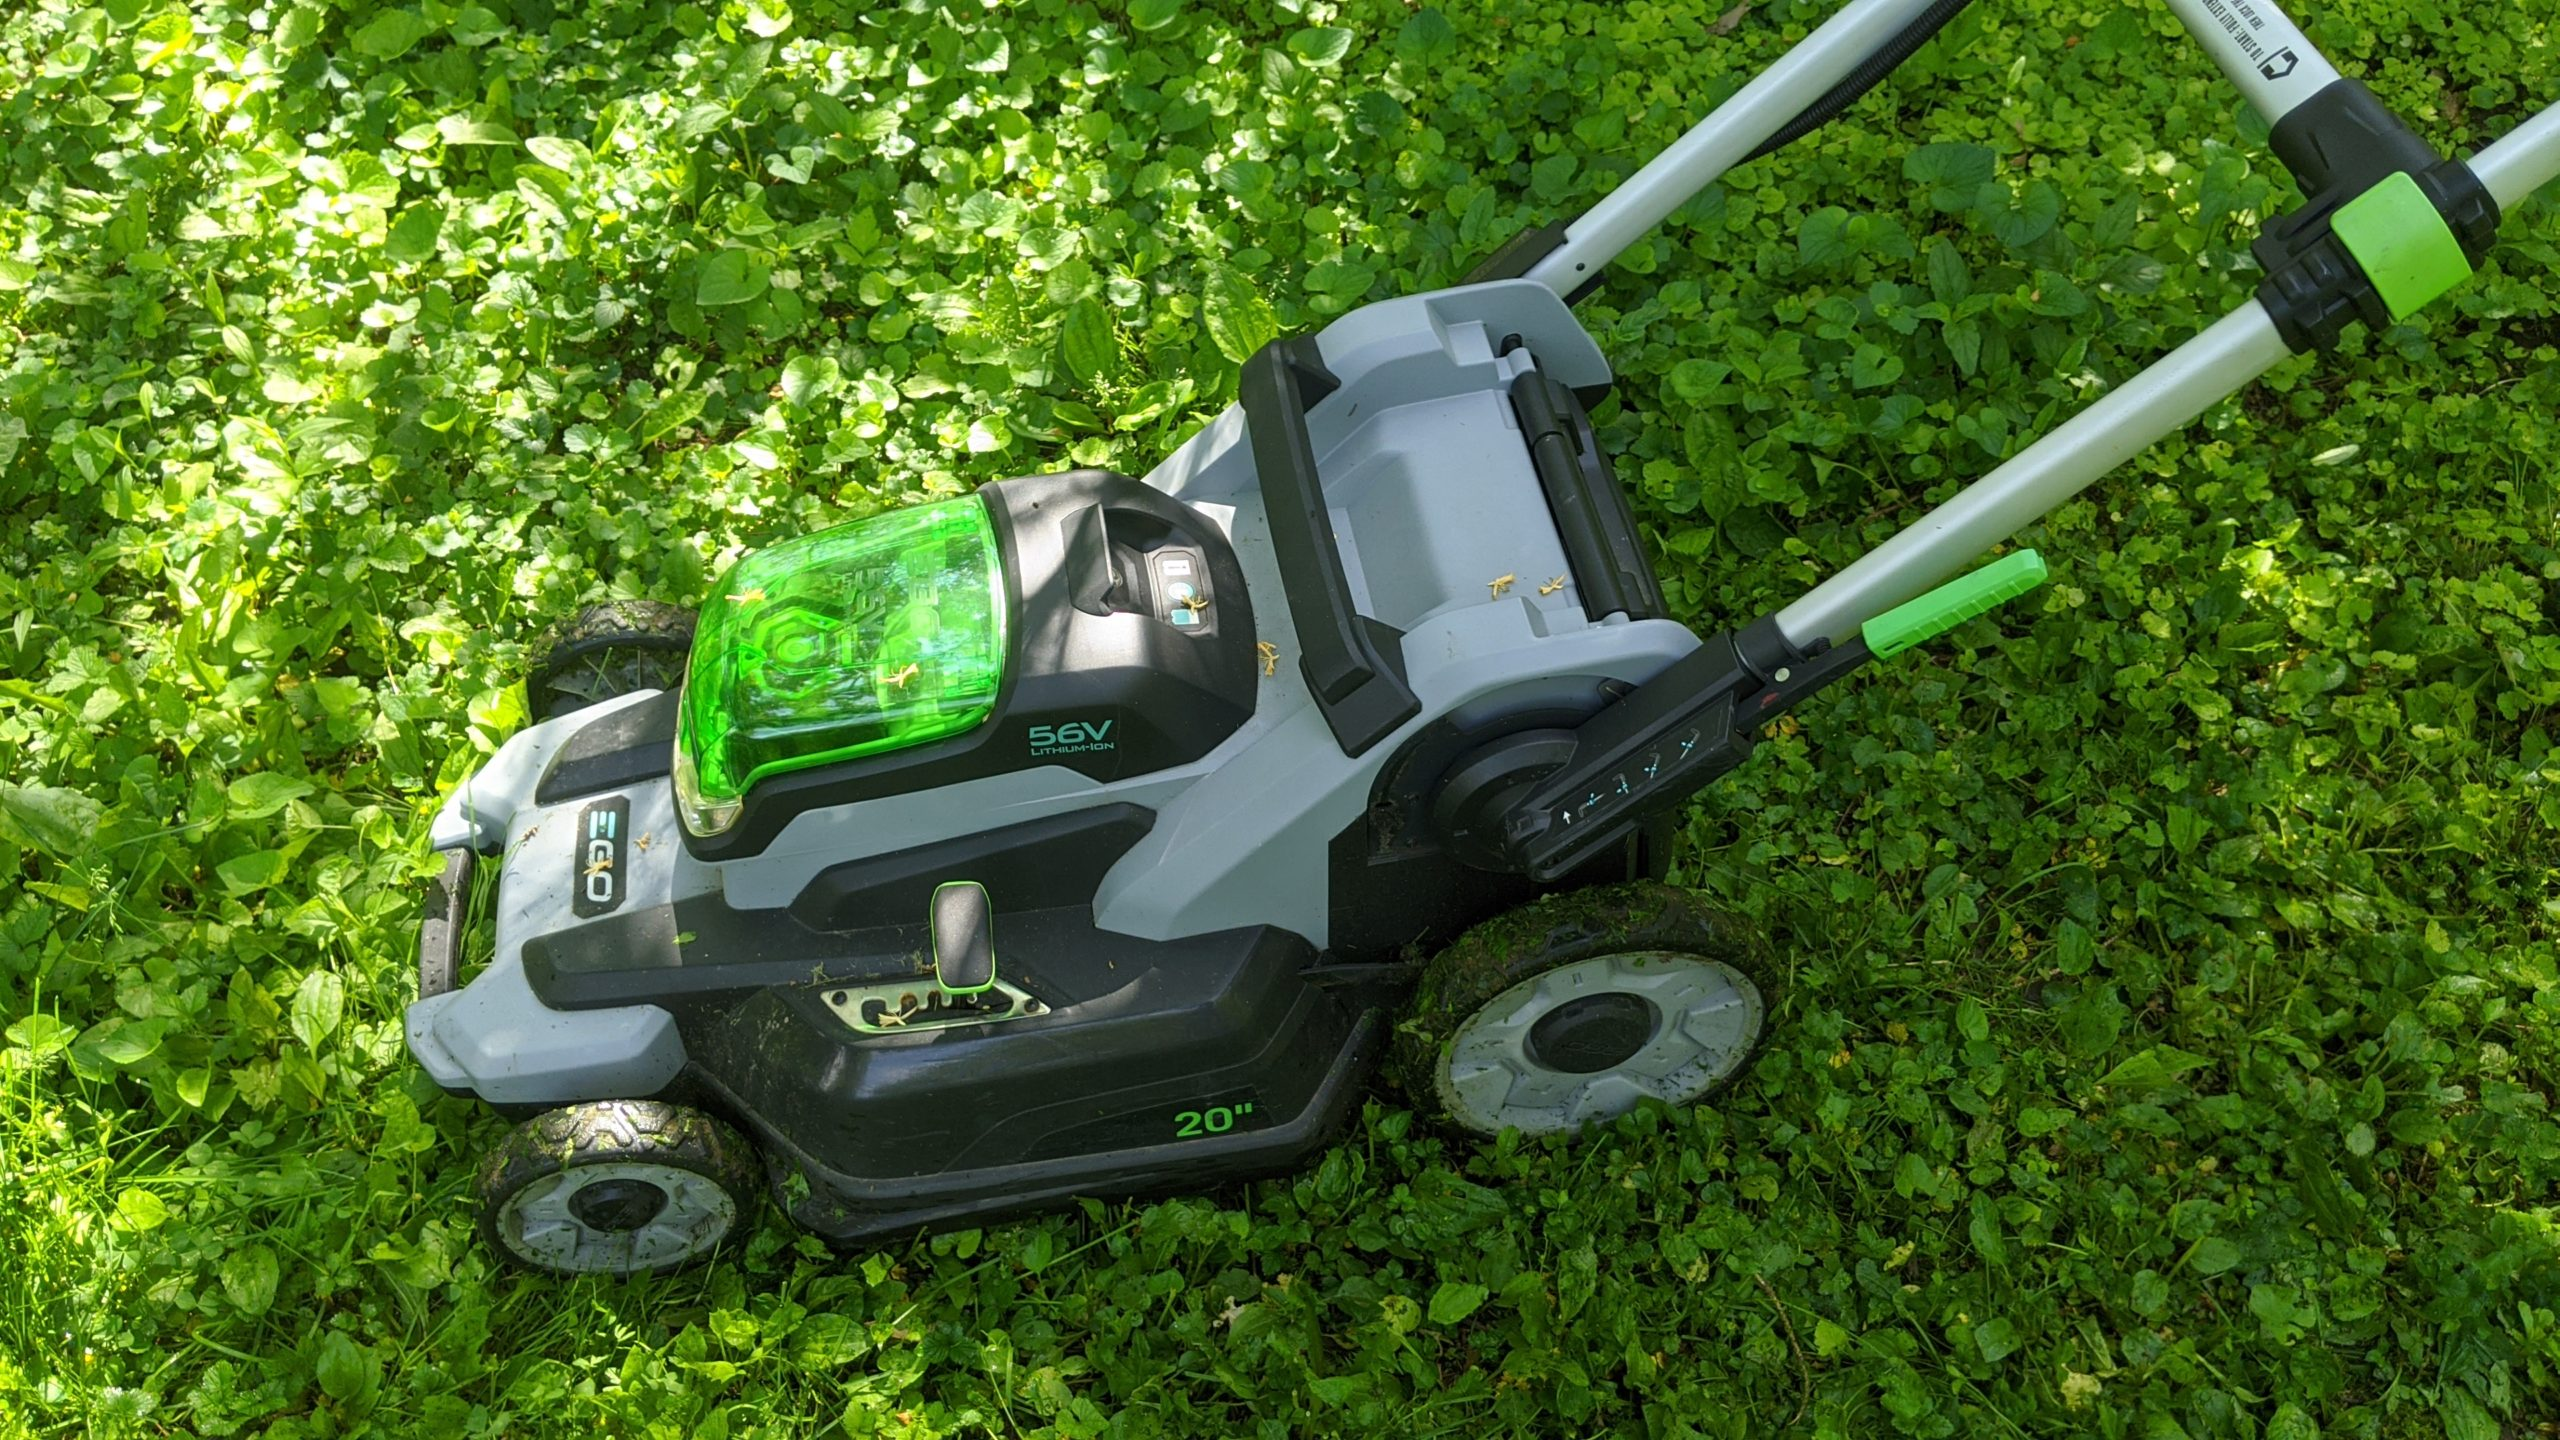 EGO Electric Lawn Mower (3 years later)